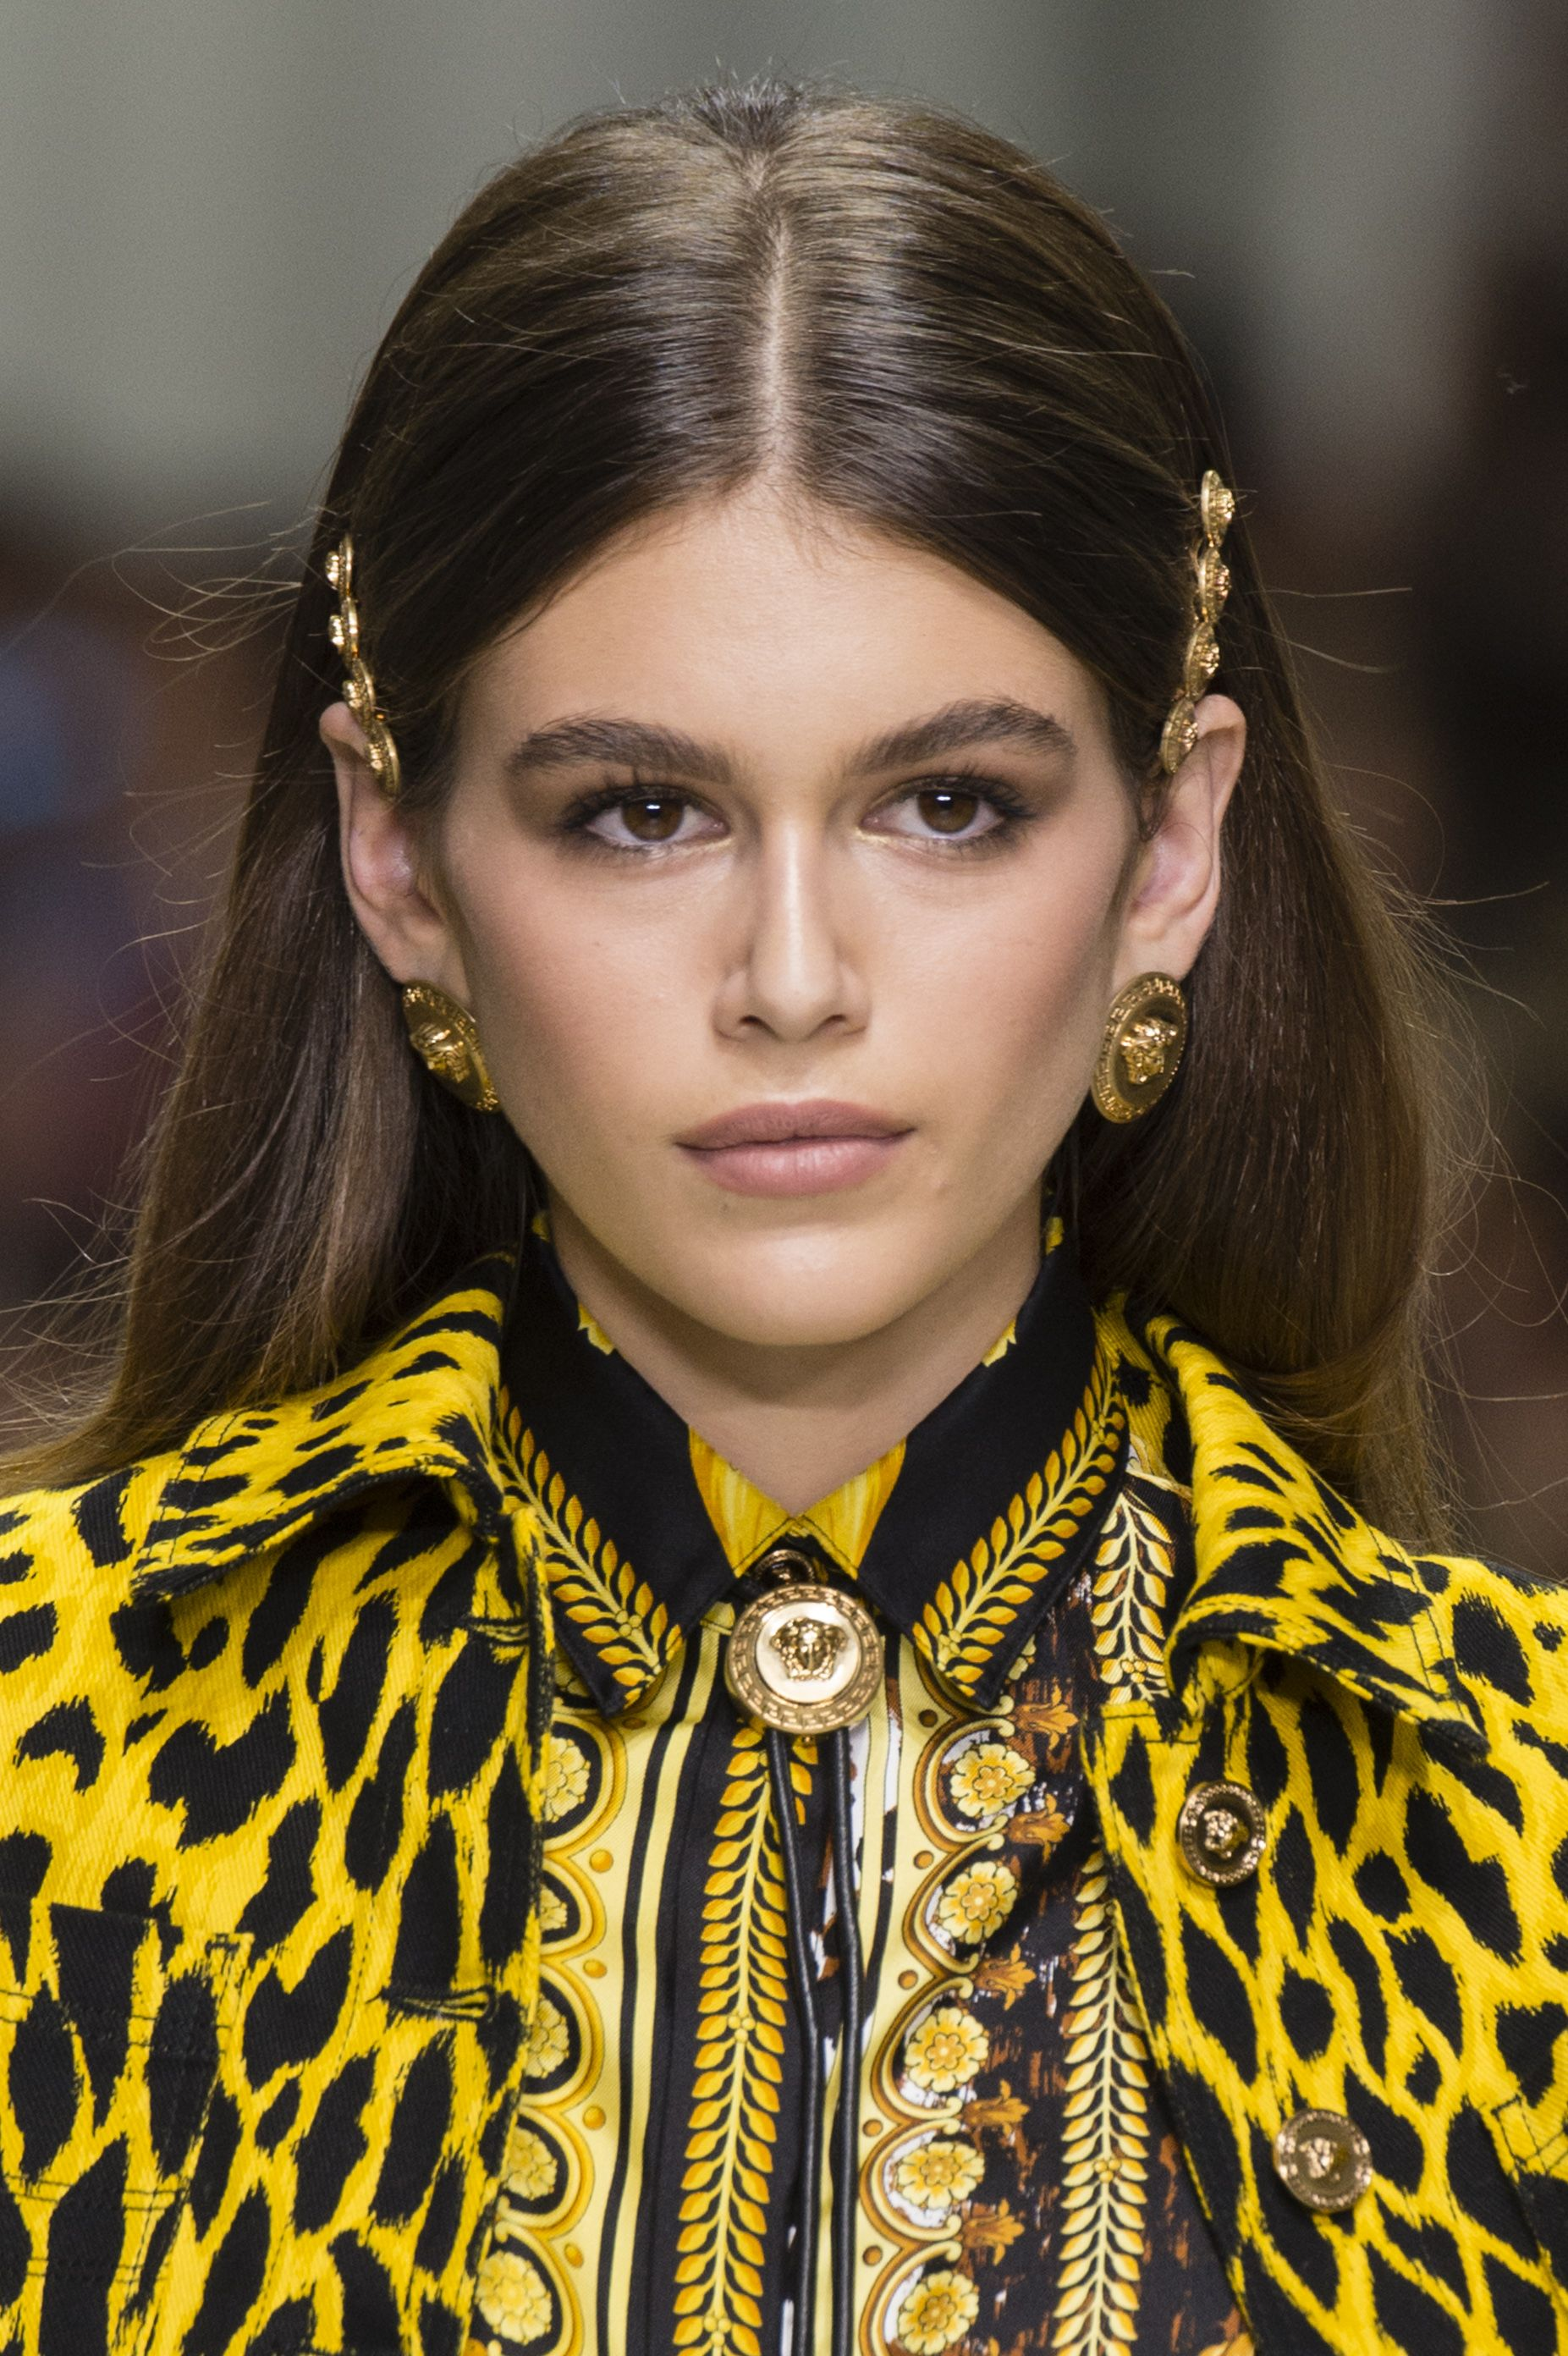 Trendy hairstyles for Spring-Summer 2015: Paris Fashion Week images